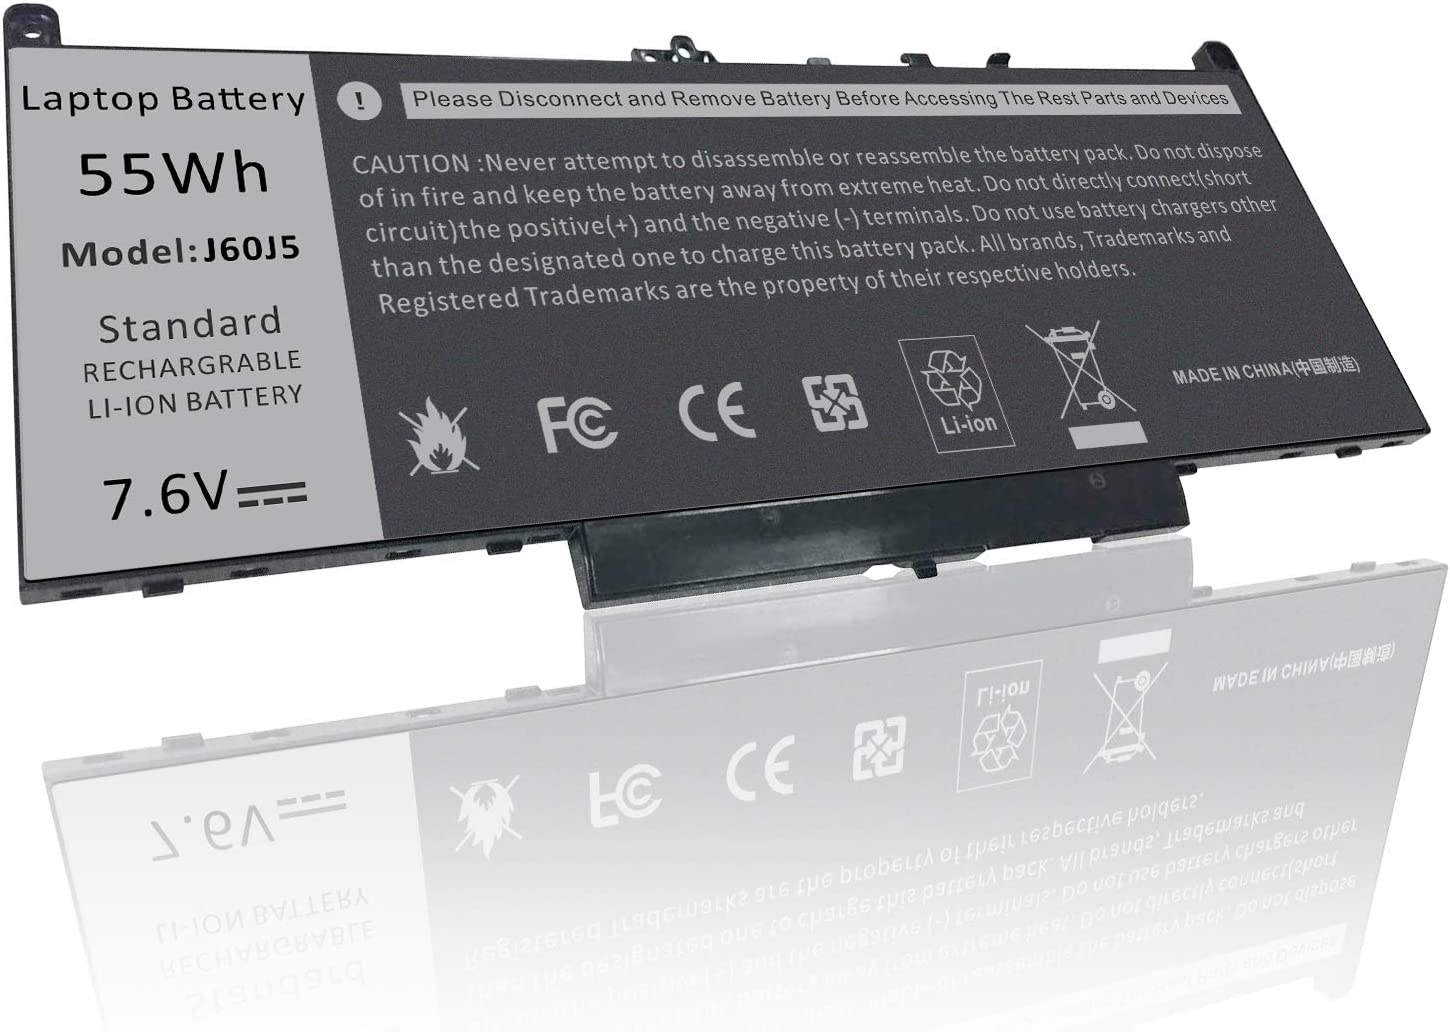 Battery for Dell Latitude E7470 E7270 7470 7270 7.6V 55Wh Battery Type MC34Y 242WD 1w2y2 J60J5